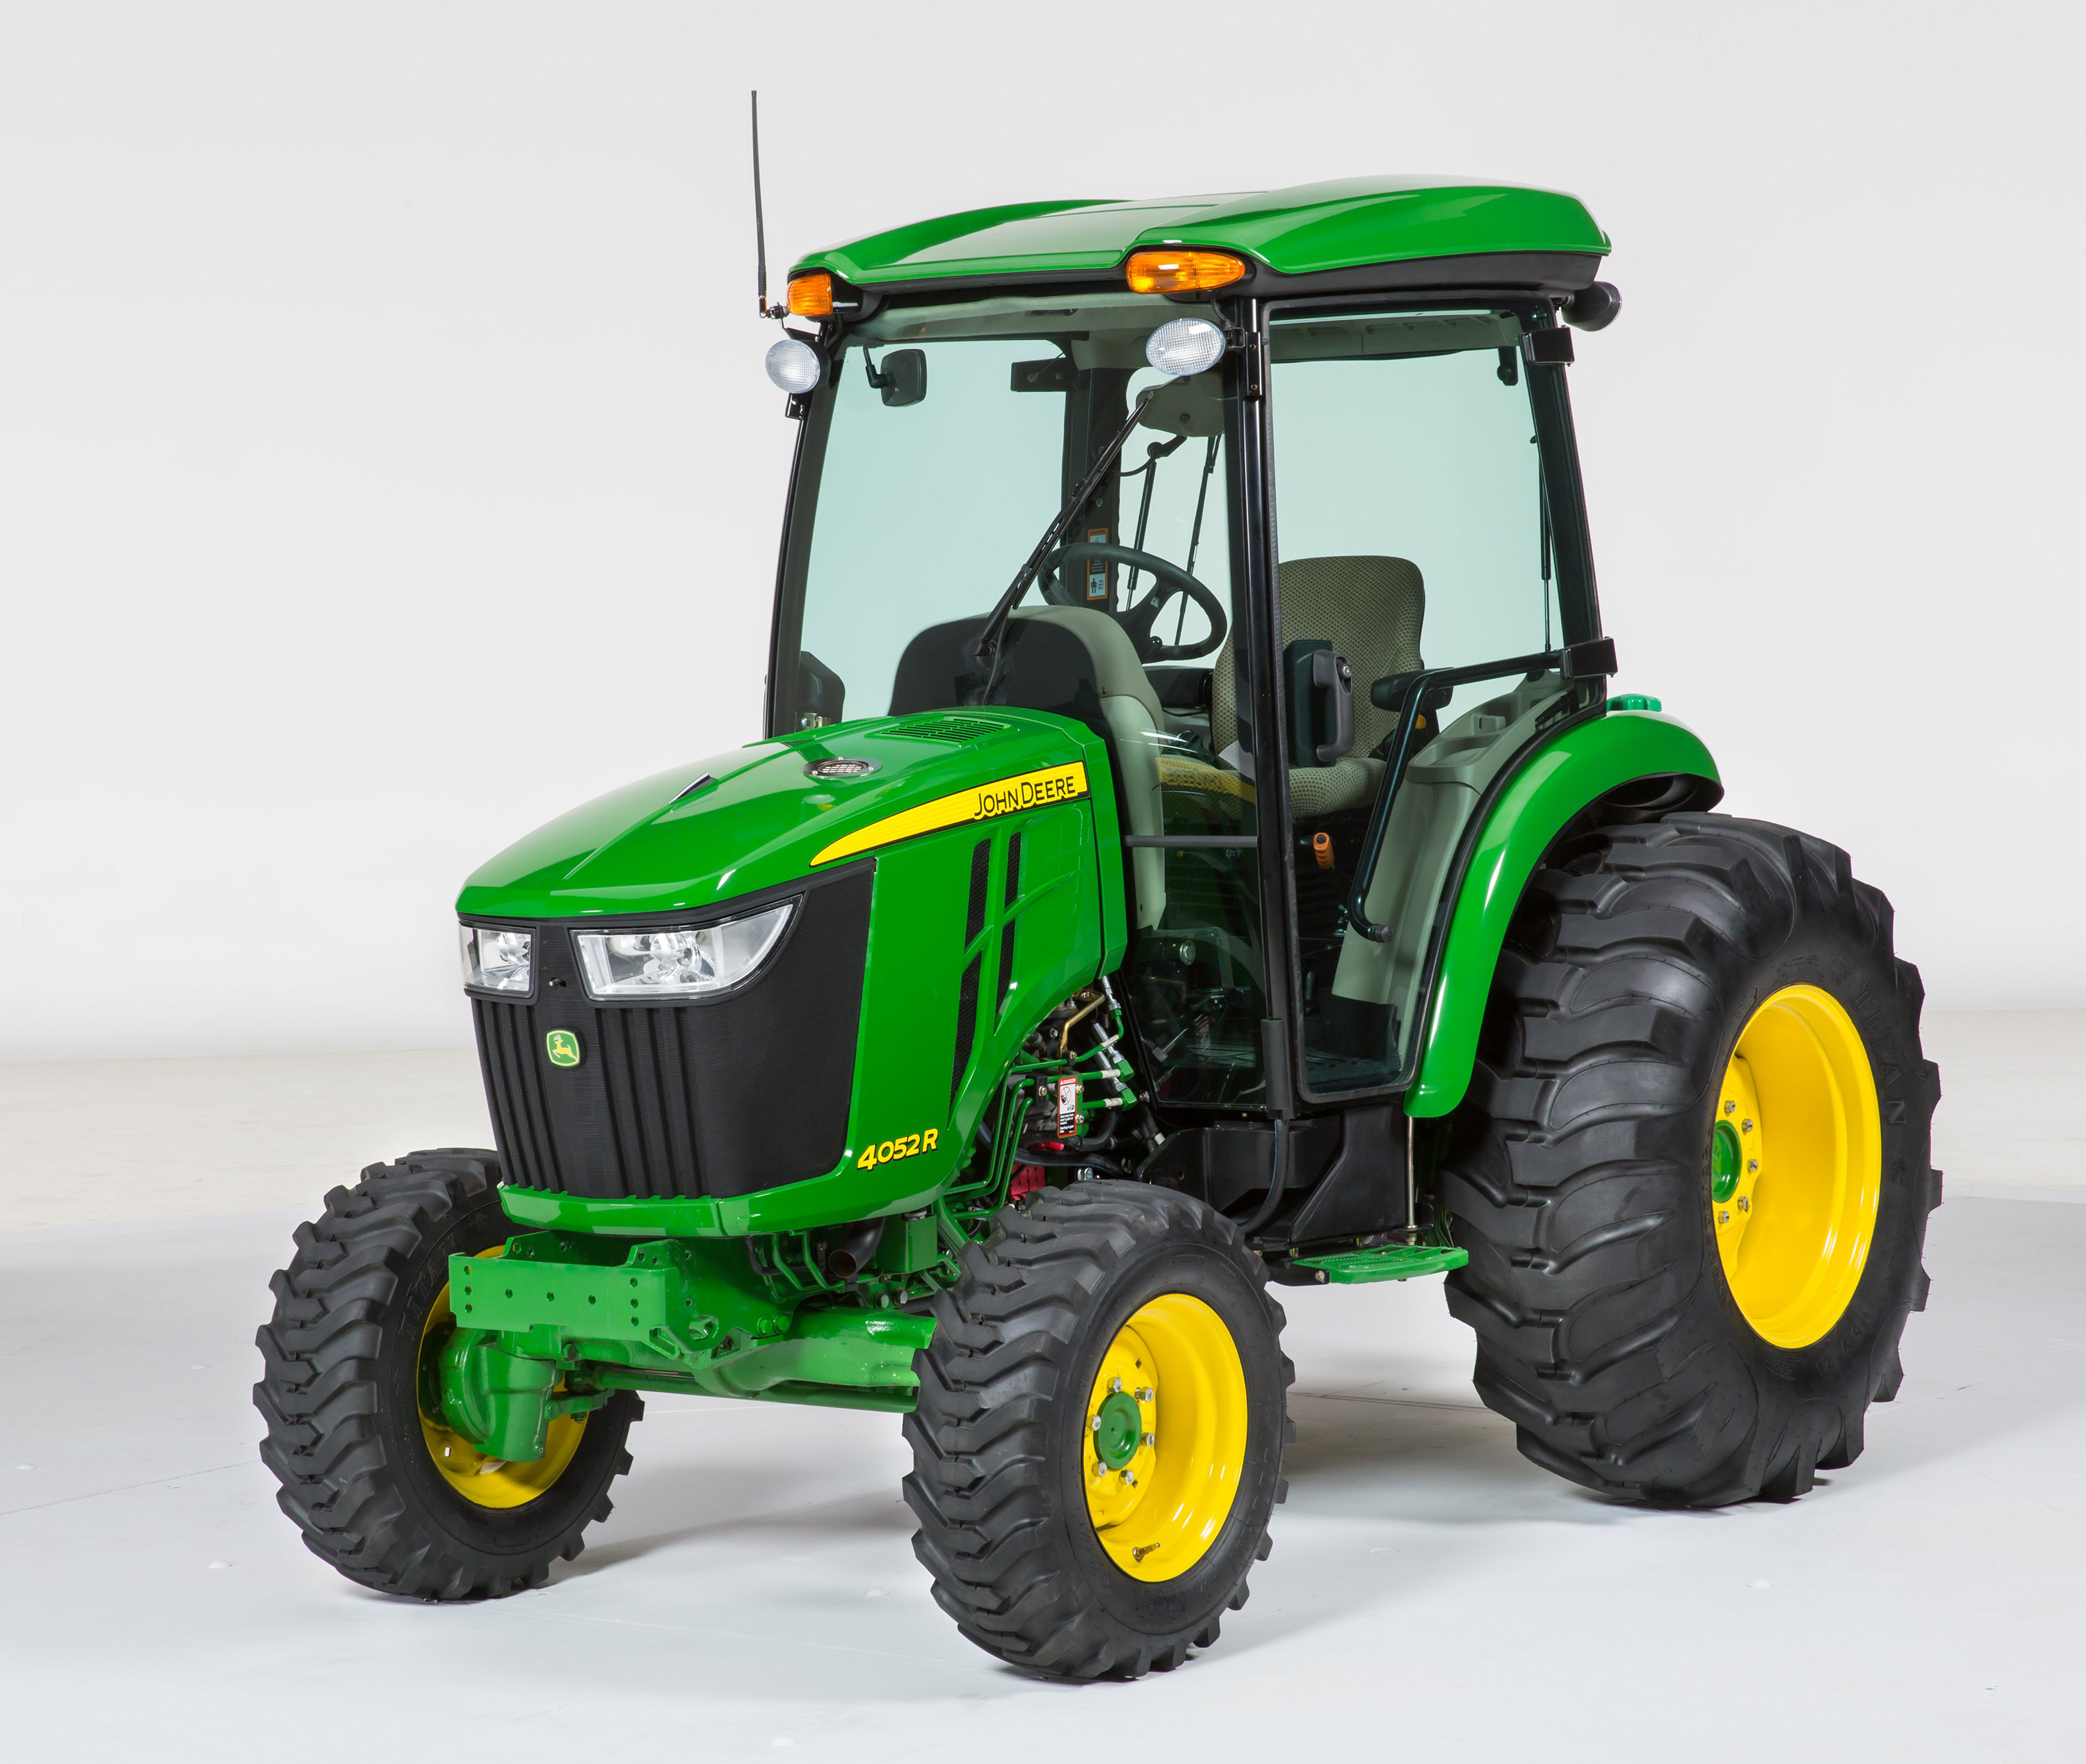 The new 4052R Compact Utility Tractor is featured here with the ...